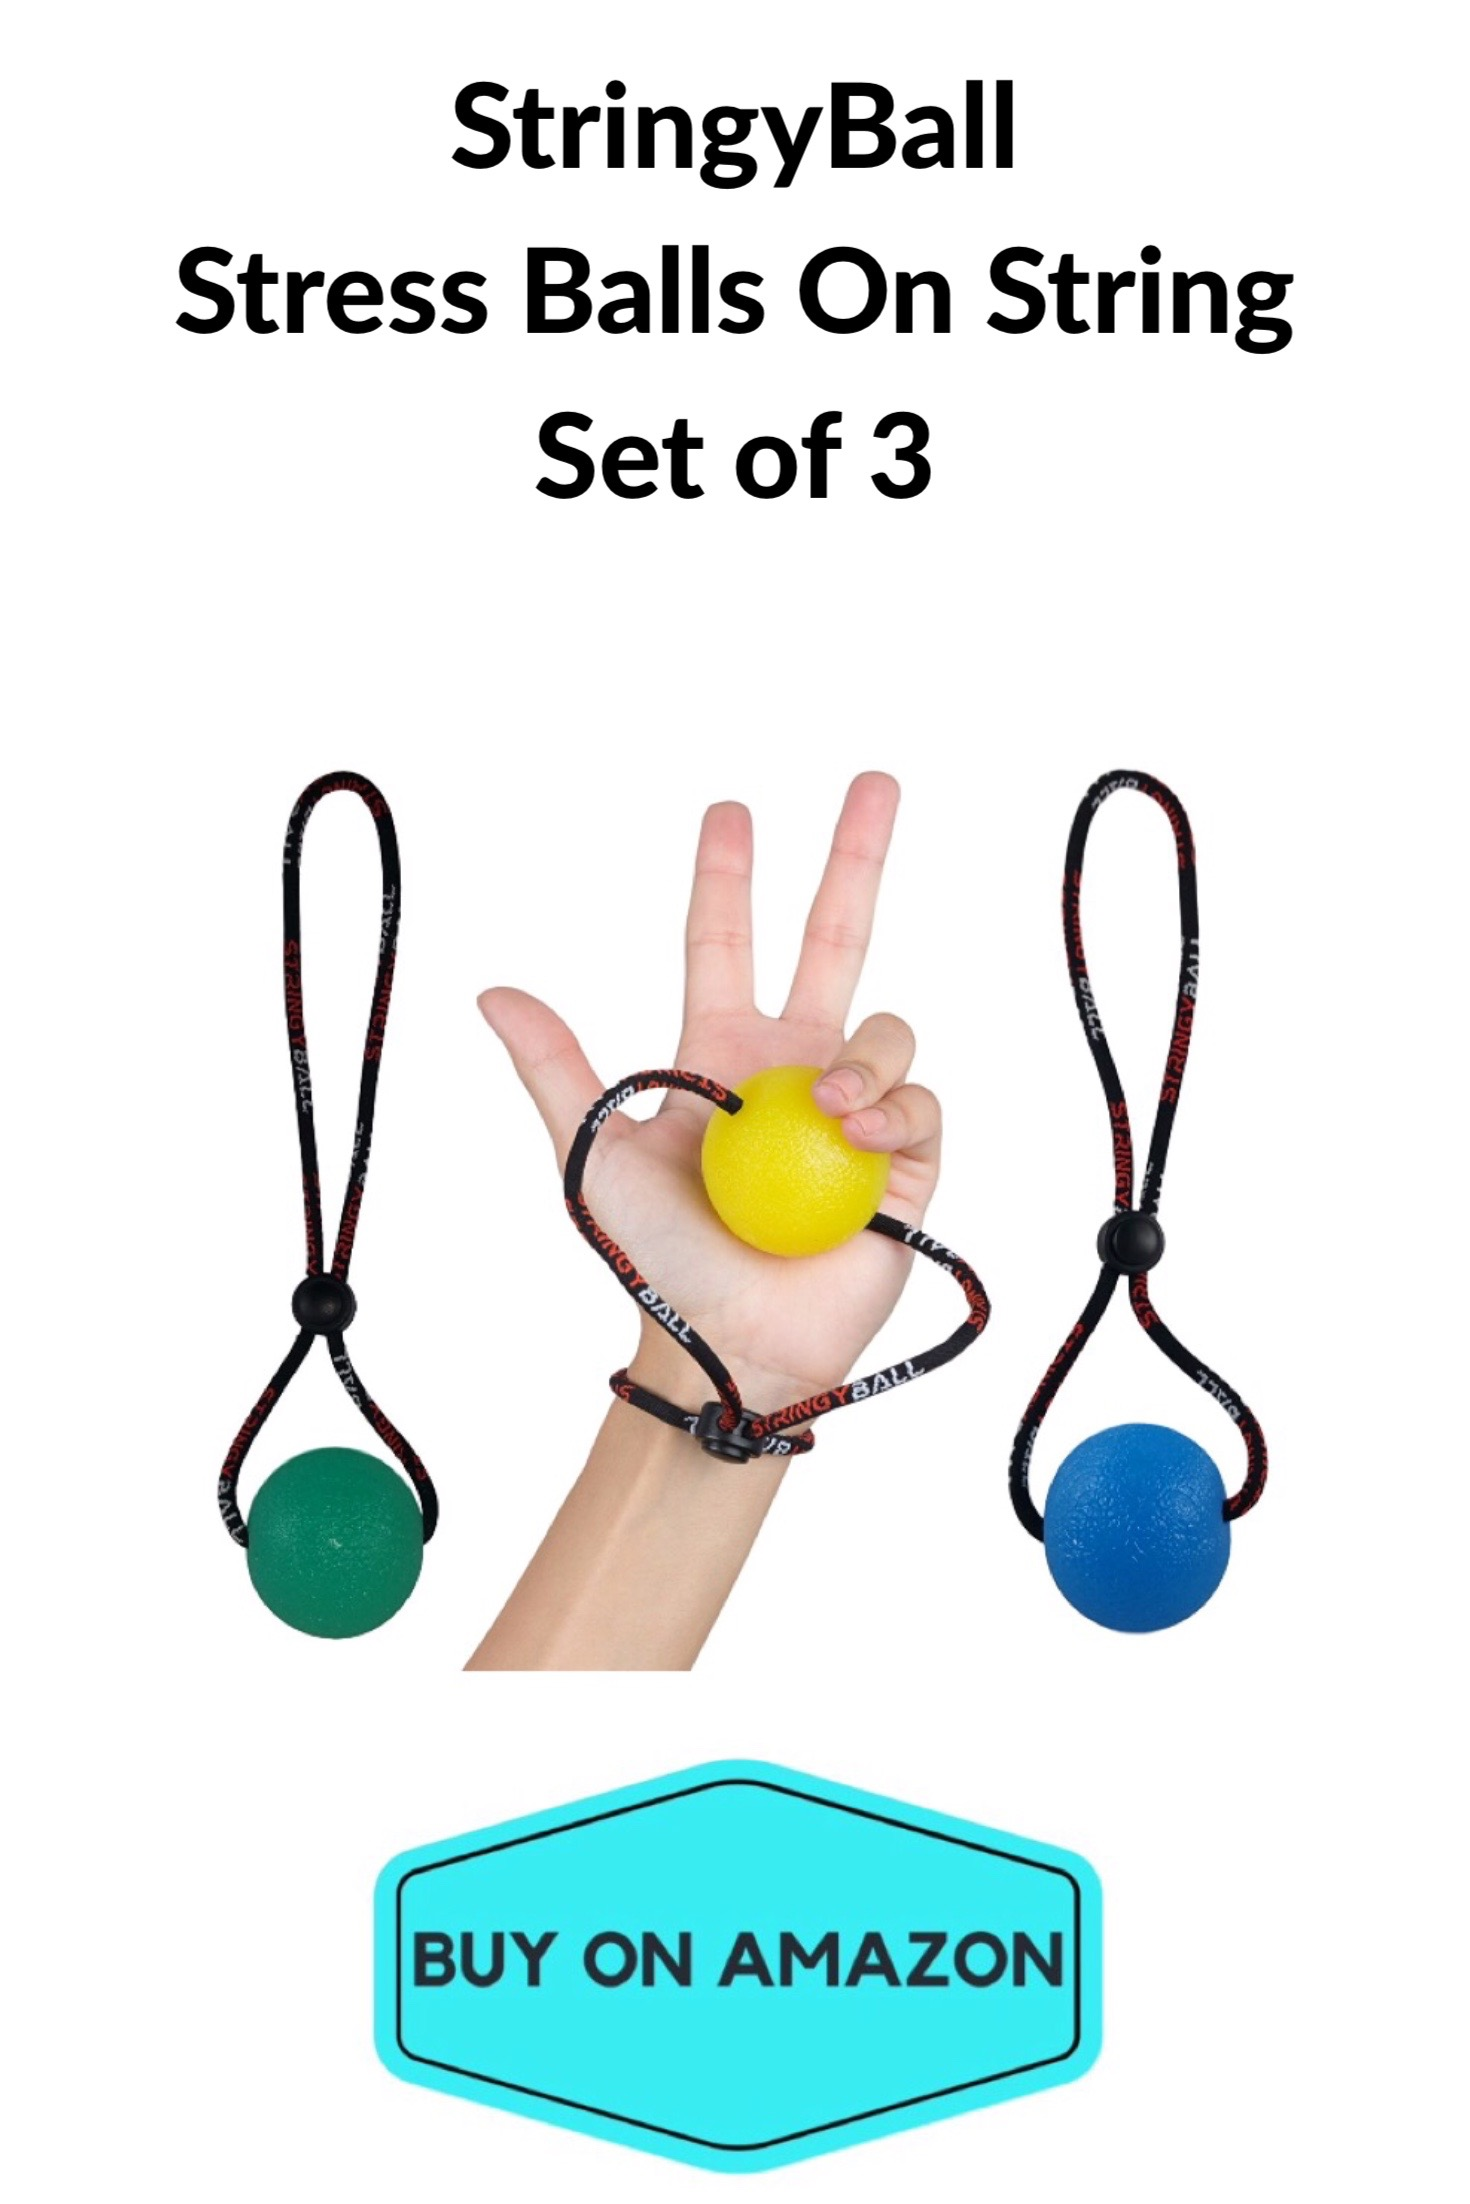 StringyBall Stress Balls on a String